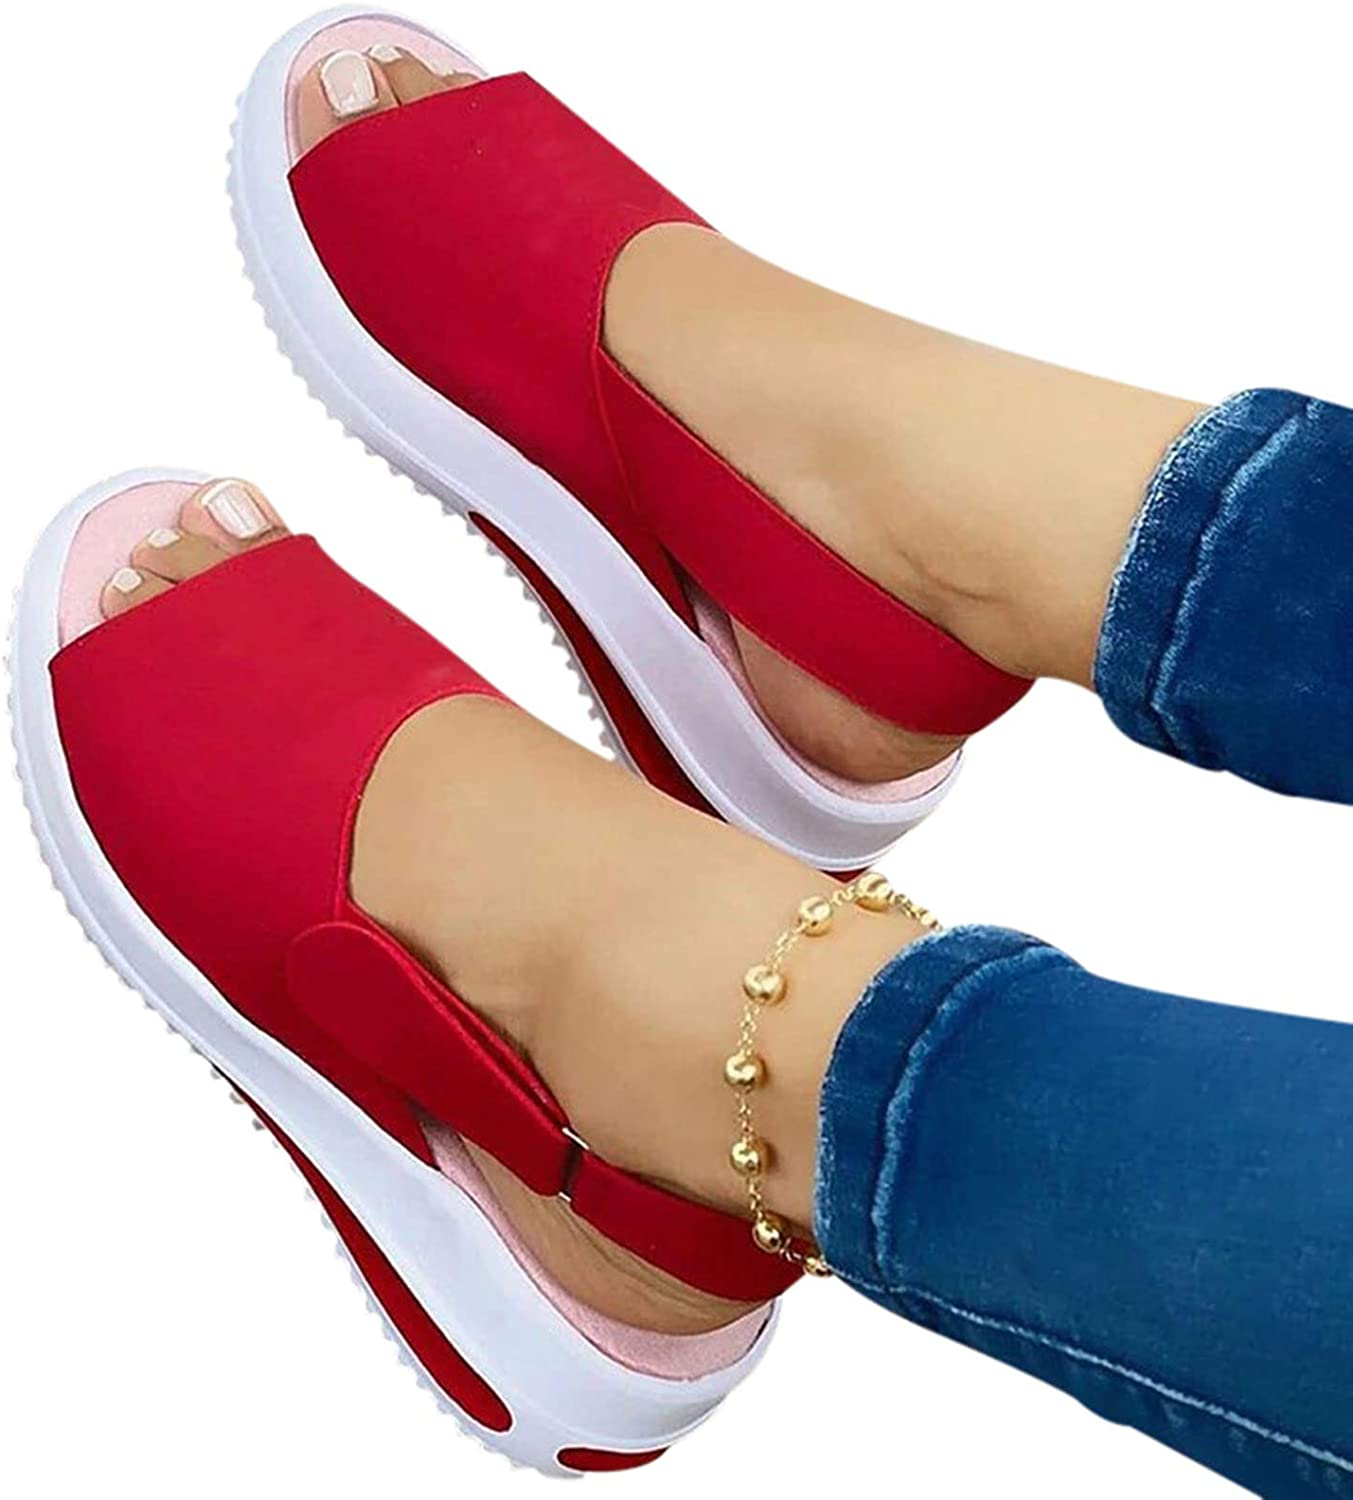 ish Mouth Flat-heeled Beach Ladies Sandals Casual Slope Female Sandals